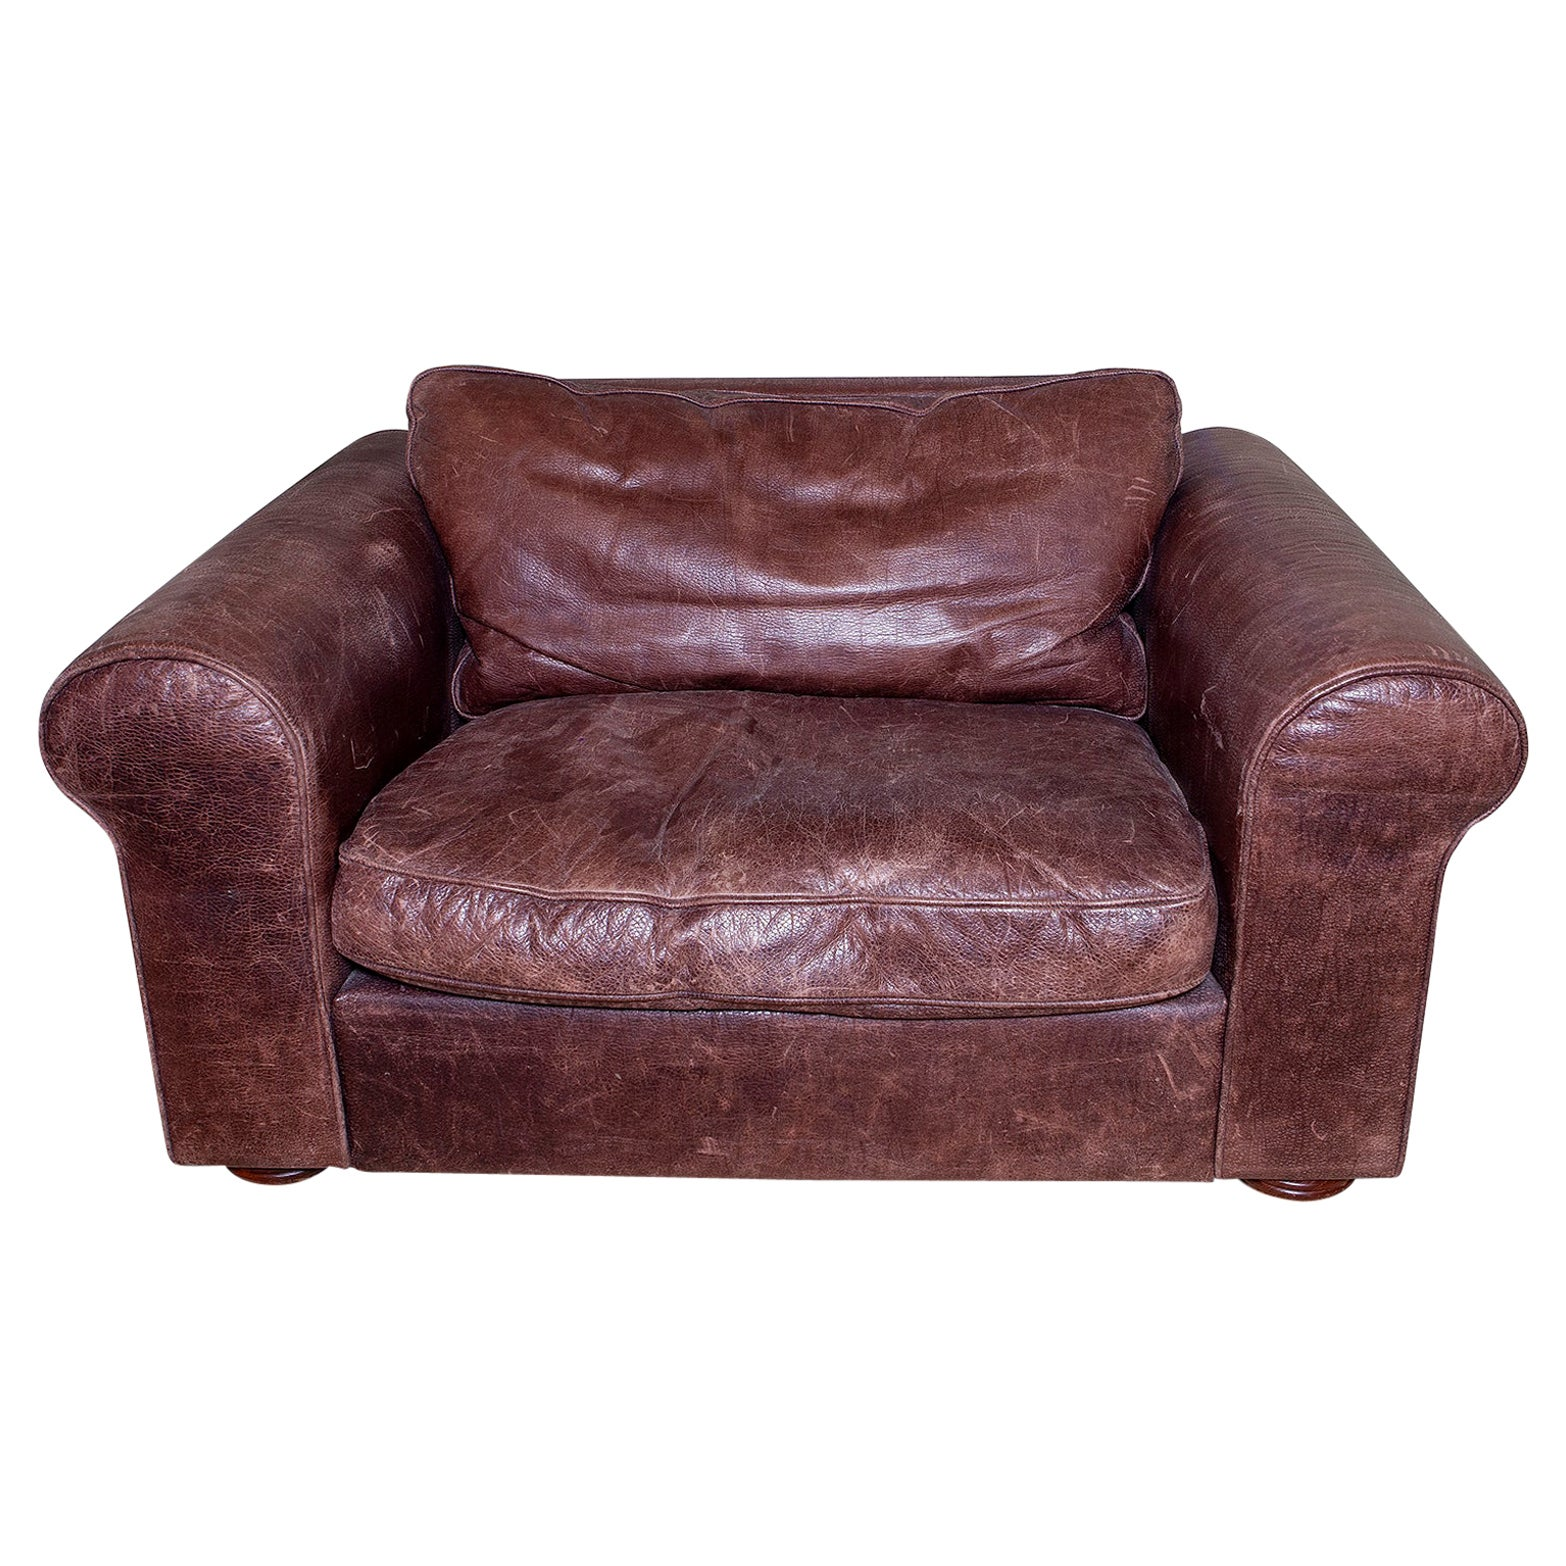 Settee Sofa 1-Seat Armchair Leather Brown Country House Club Modern